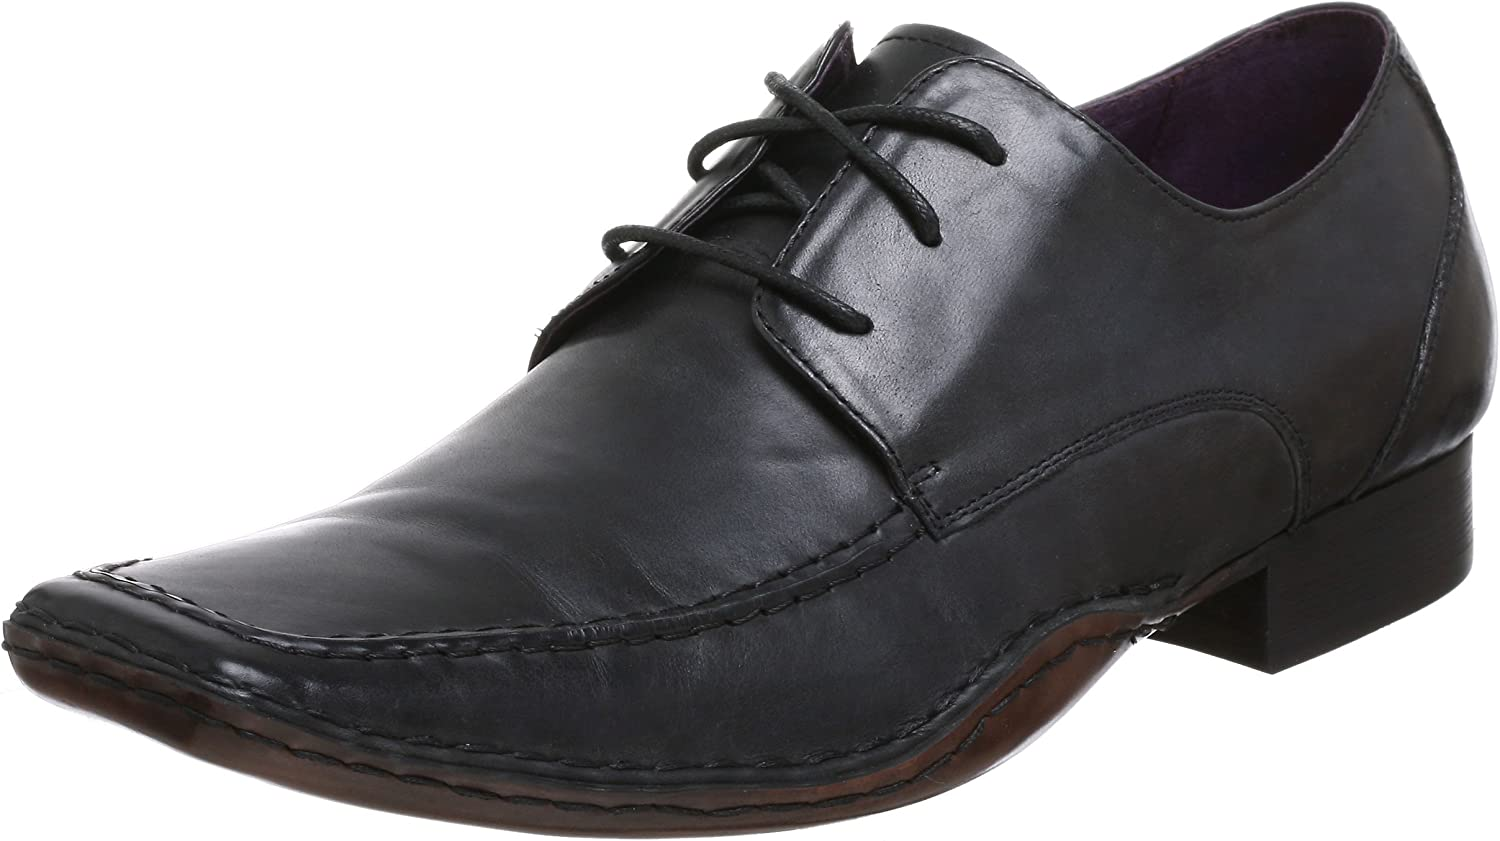 Kenneth Cole REACTION Men's Pride Full Oxford